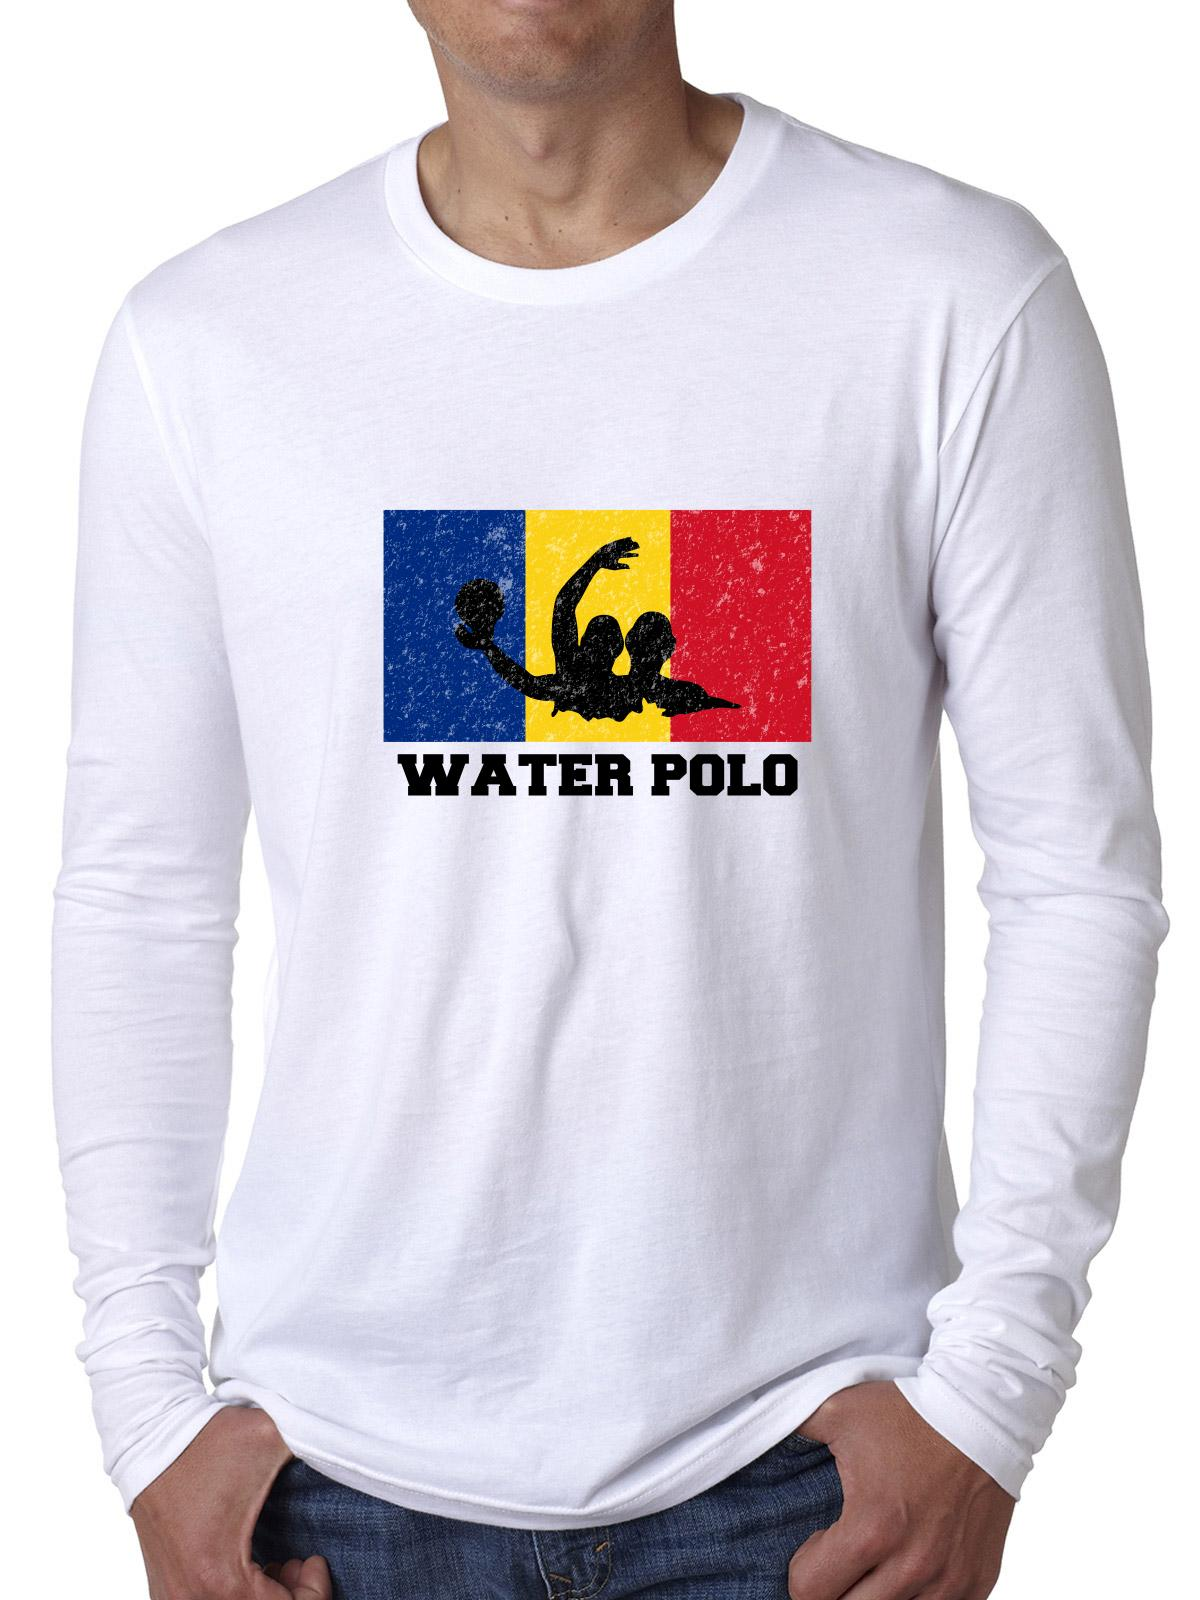 Romania Olympic Water Polo Flag Silhouette Men's Long Sleeve T-Shirt by Hollywood Thread